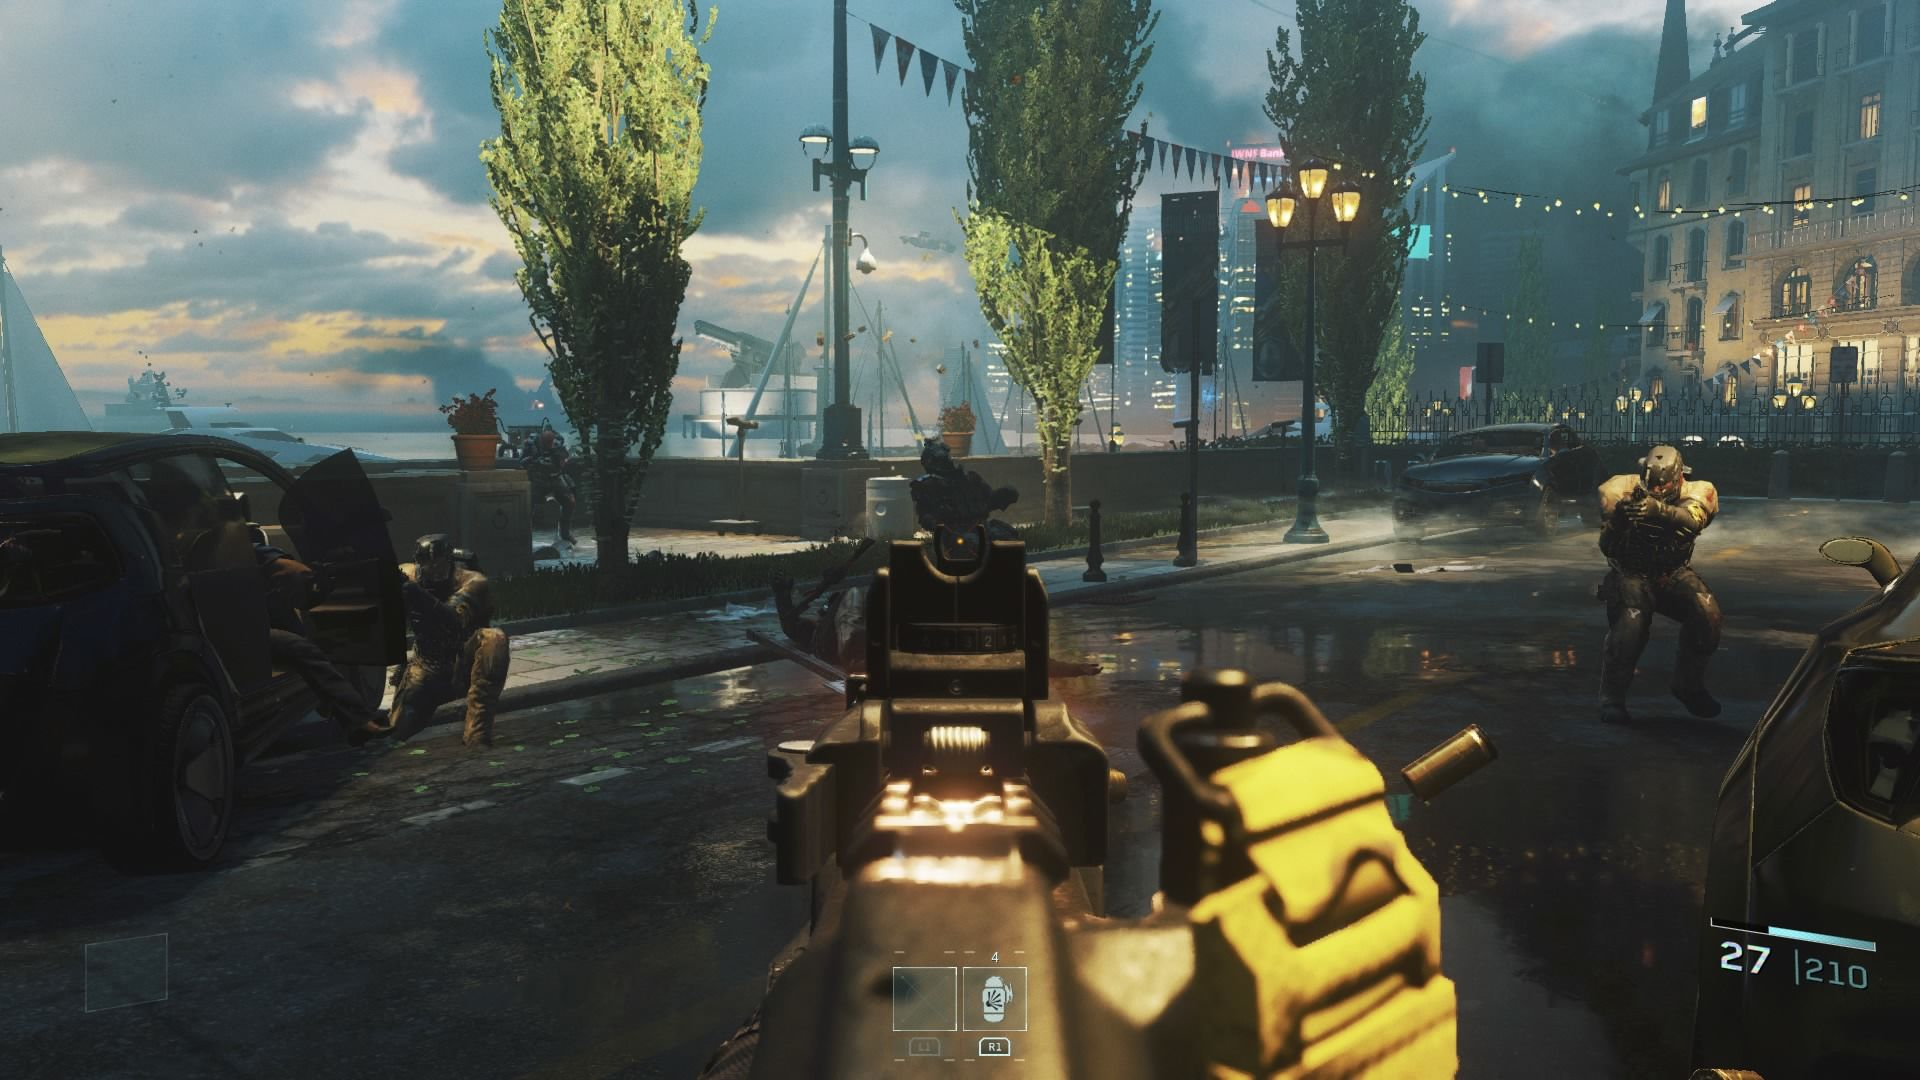 Call Of Duty Infinite Warfare Screenshots For Playstation 4 Mobygames Game Ps4 Enemy Forces Are Boldly Declaring A War In